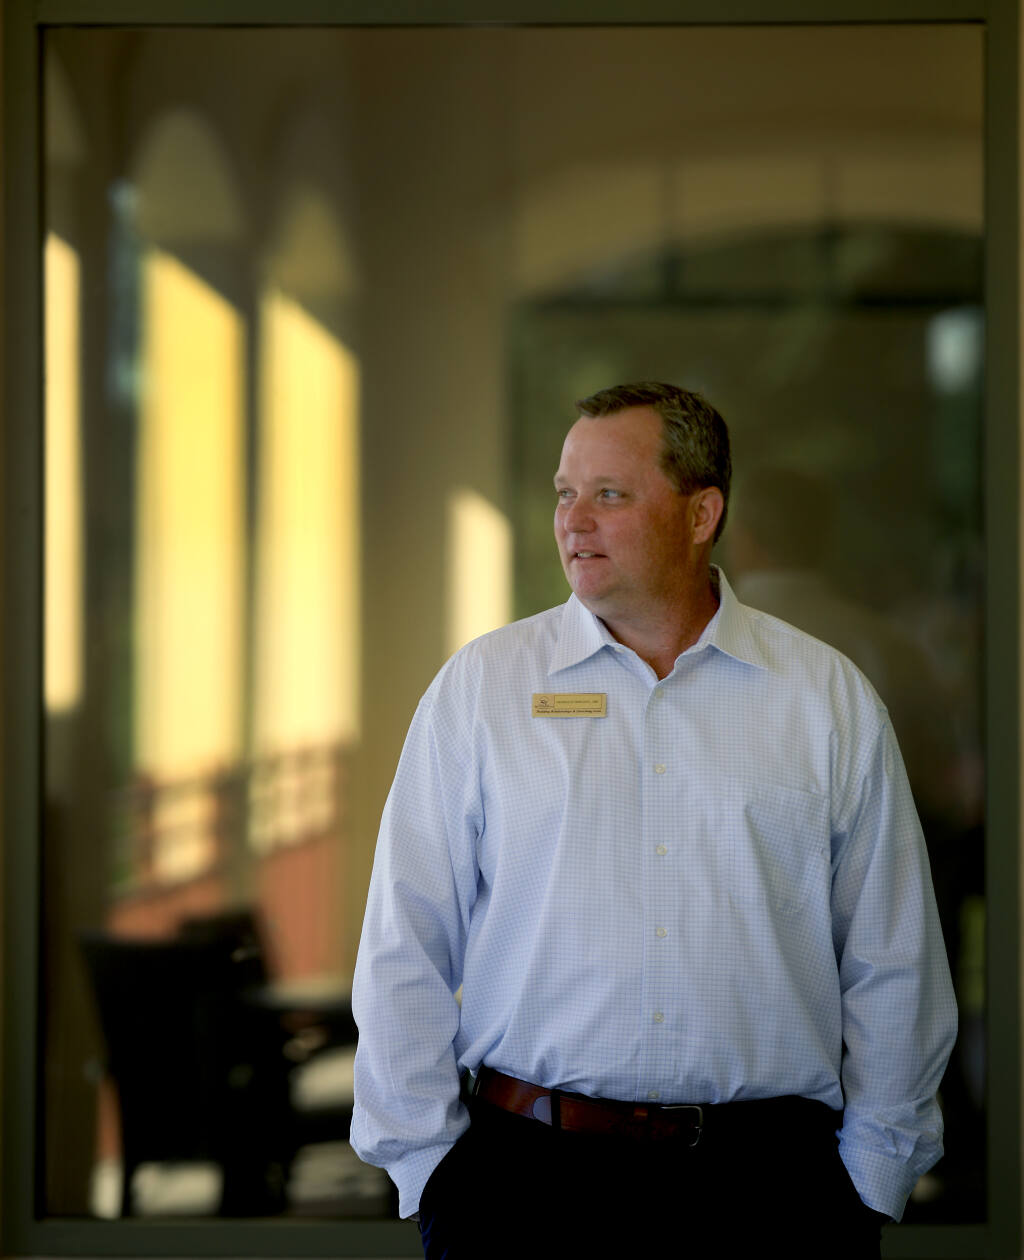 Dennis Stankovic, the new general manager of the Santa Rosa Golf & Country Club, spent five weeks on a ventilator after contracting COVID-19. Three separate times doctors told his family he was at the end of his life. Photo taken Thursday, June 10, 2021. (Kent Porter / The Press Democrat) 2021